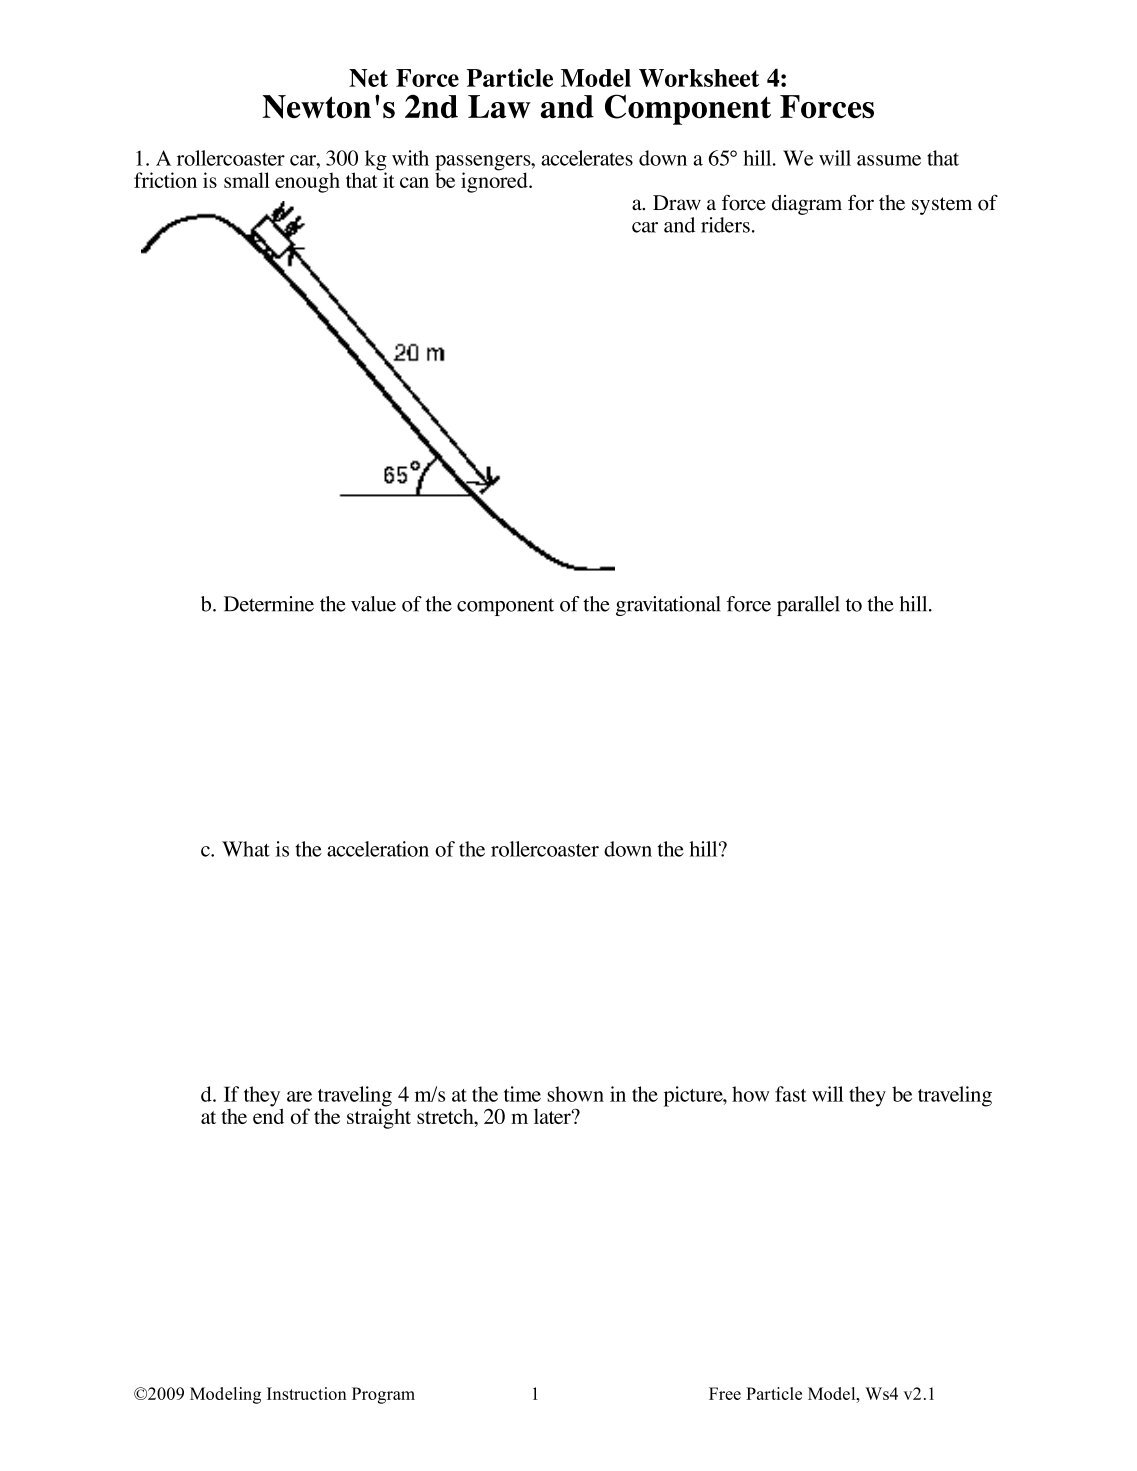 Free Particle Model Worksheet 1a Force Diagrams - Livinghealthybulletin